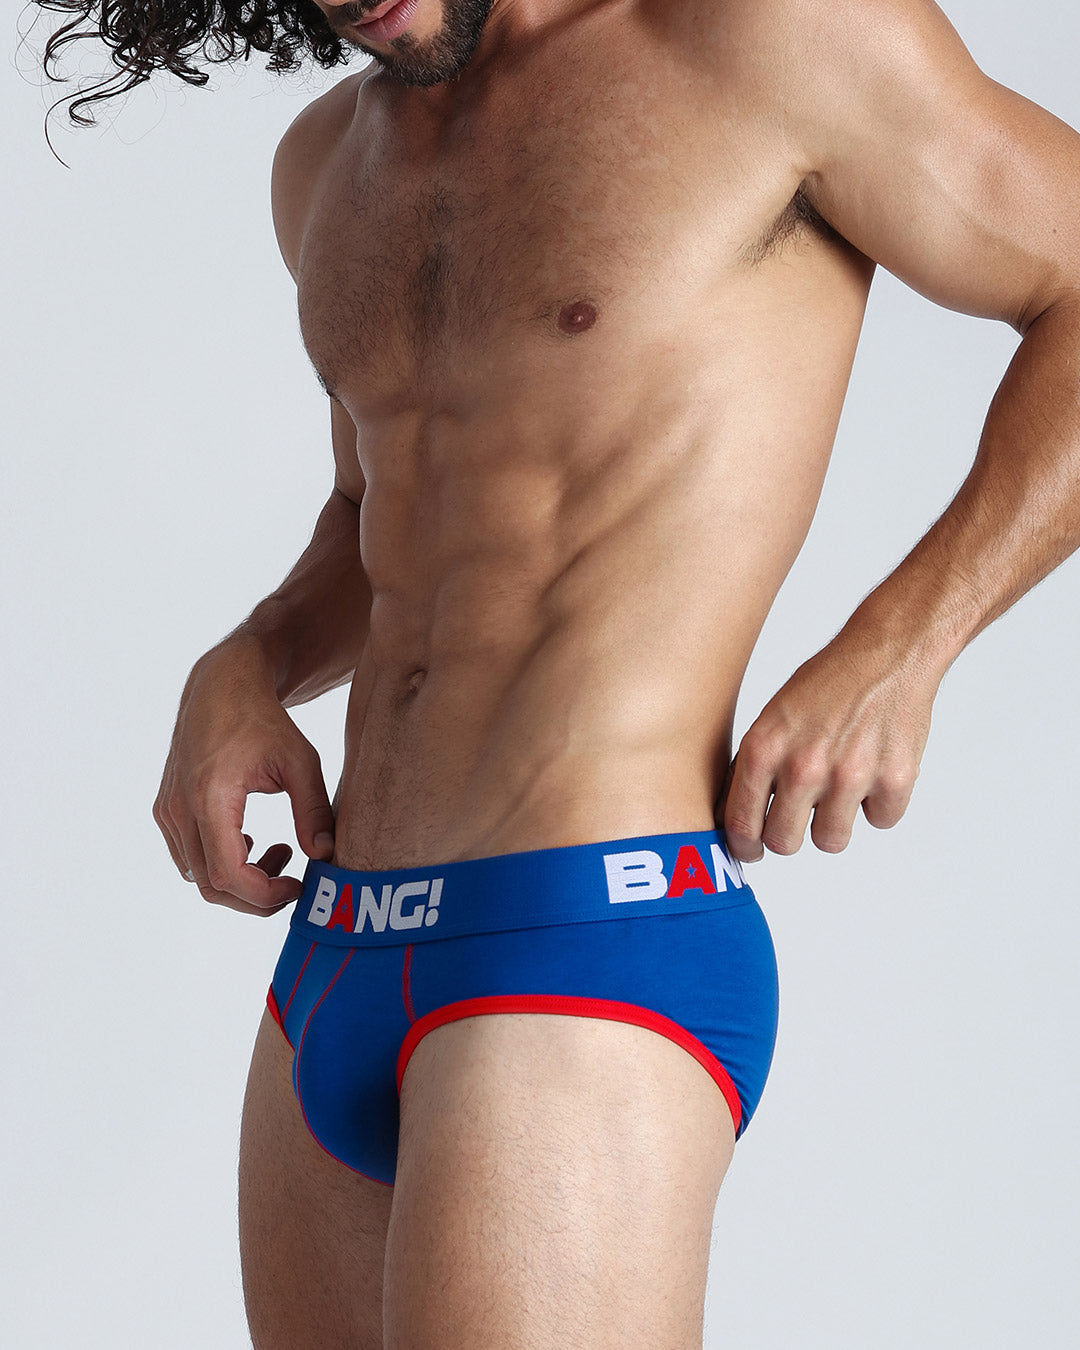 This men's premium cotton brief is equipped with a low rise fit that provides style and performance.